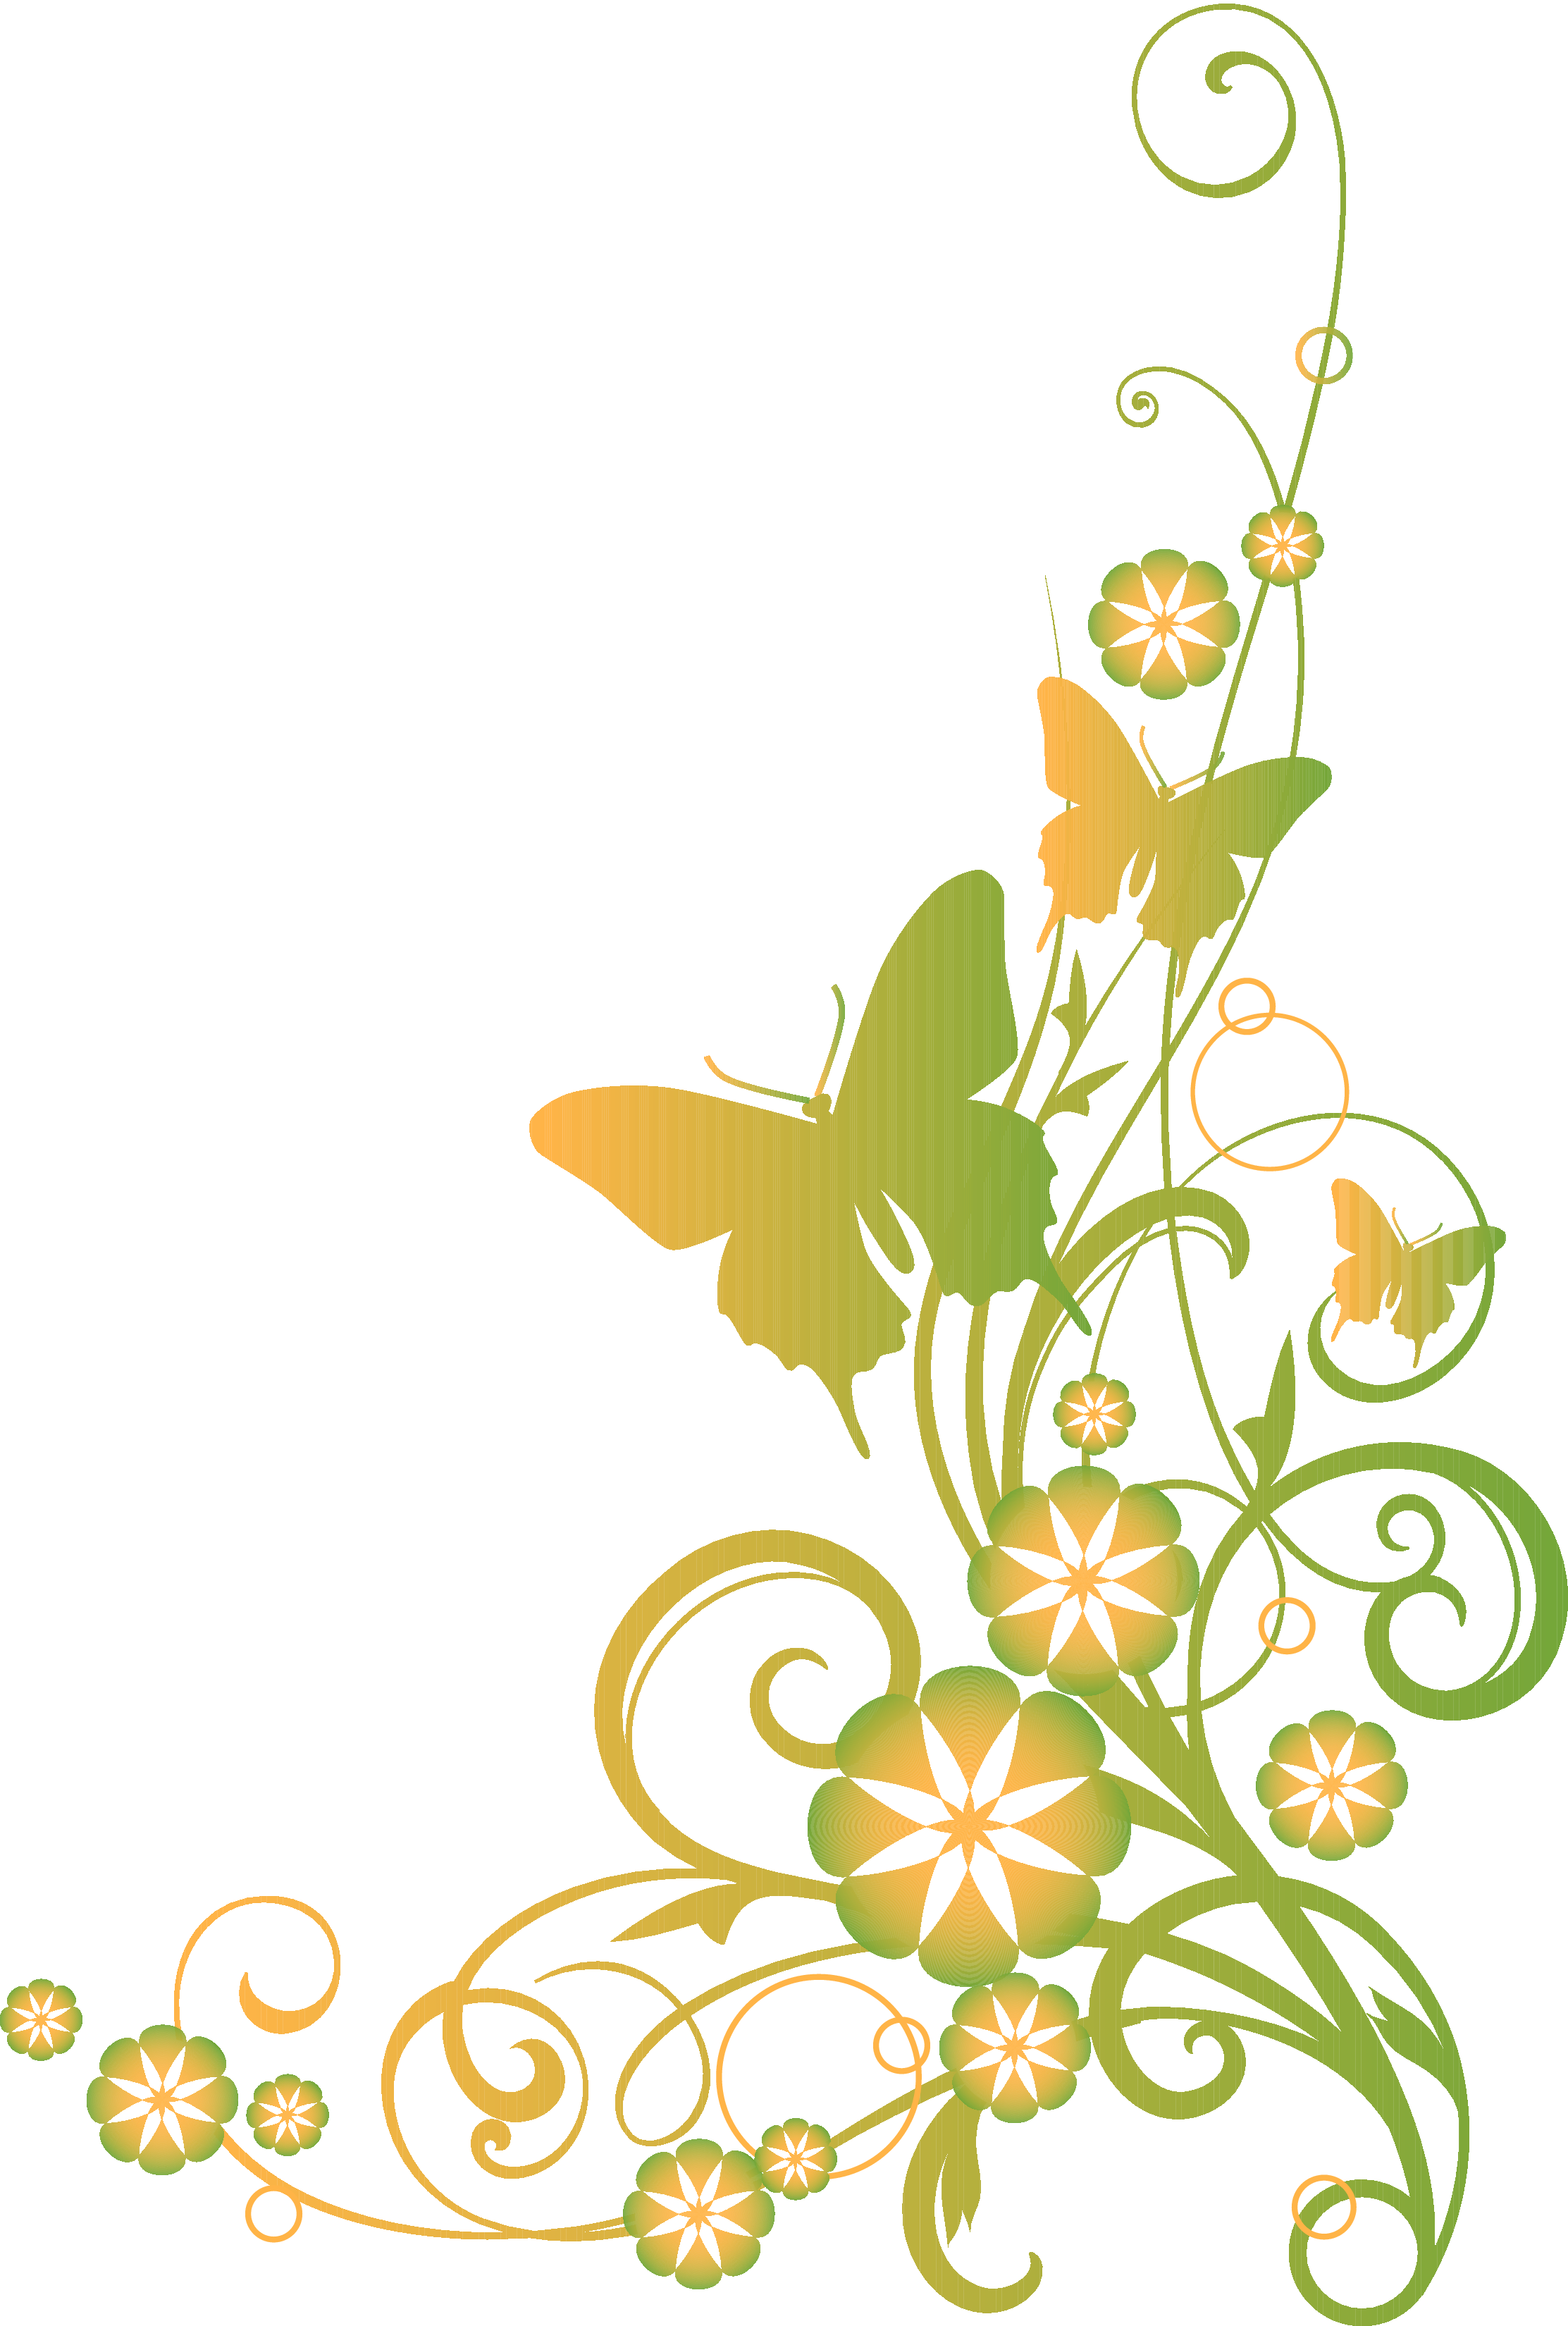 Religious clip art and. Vines clipart yellow flower